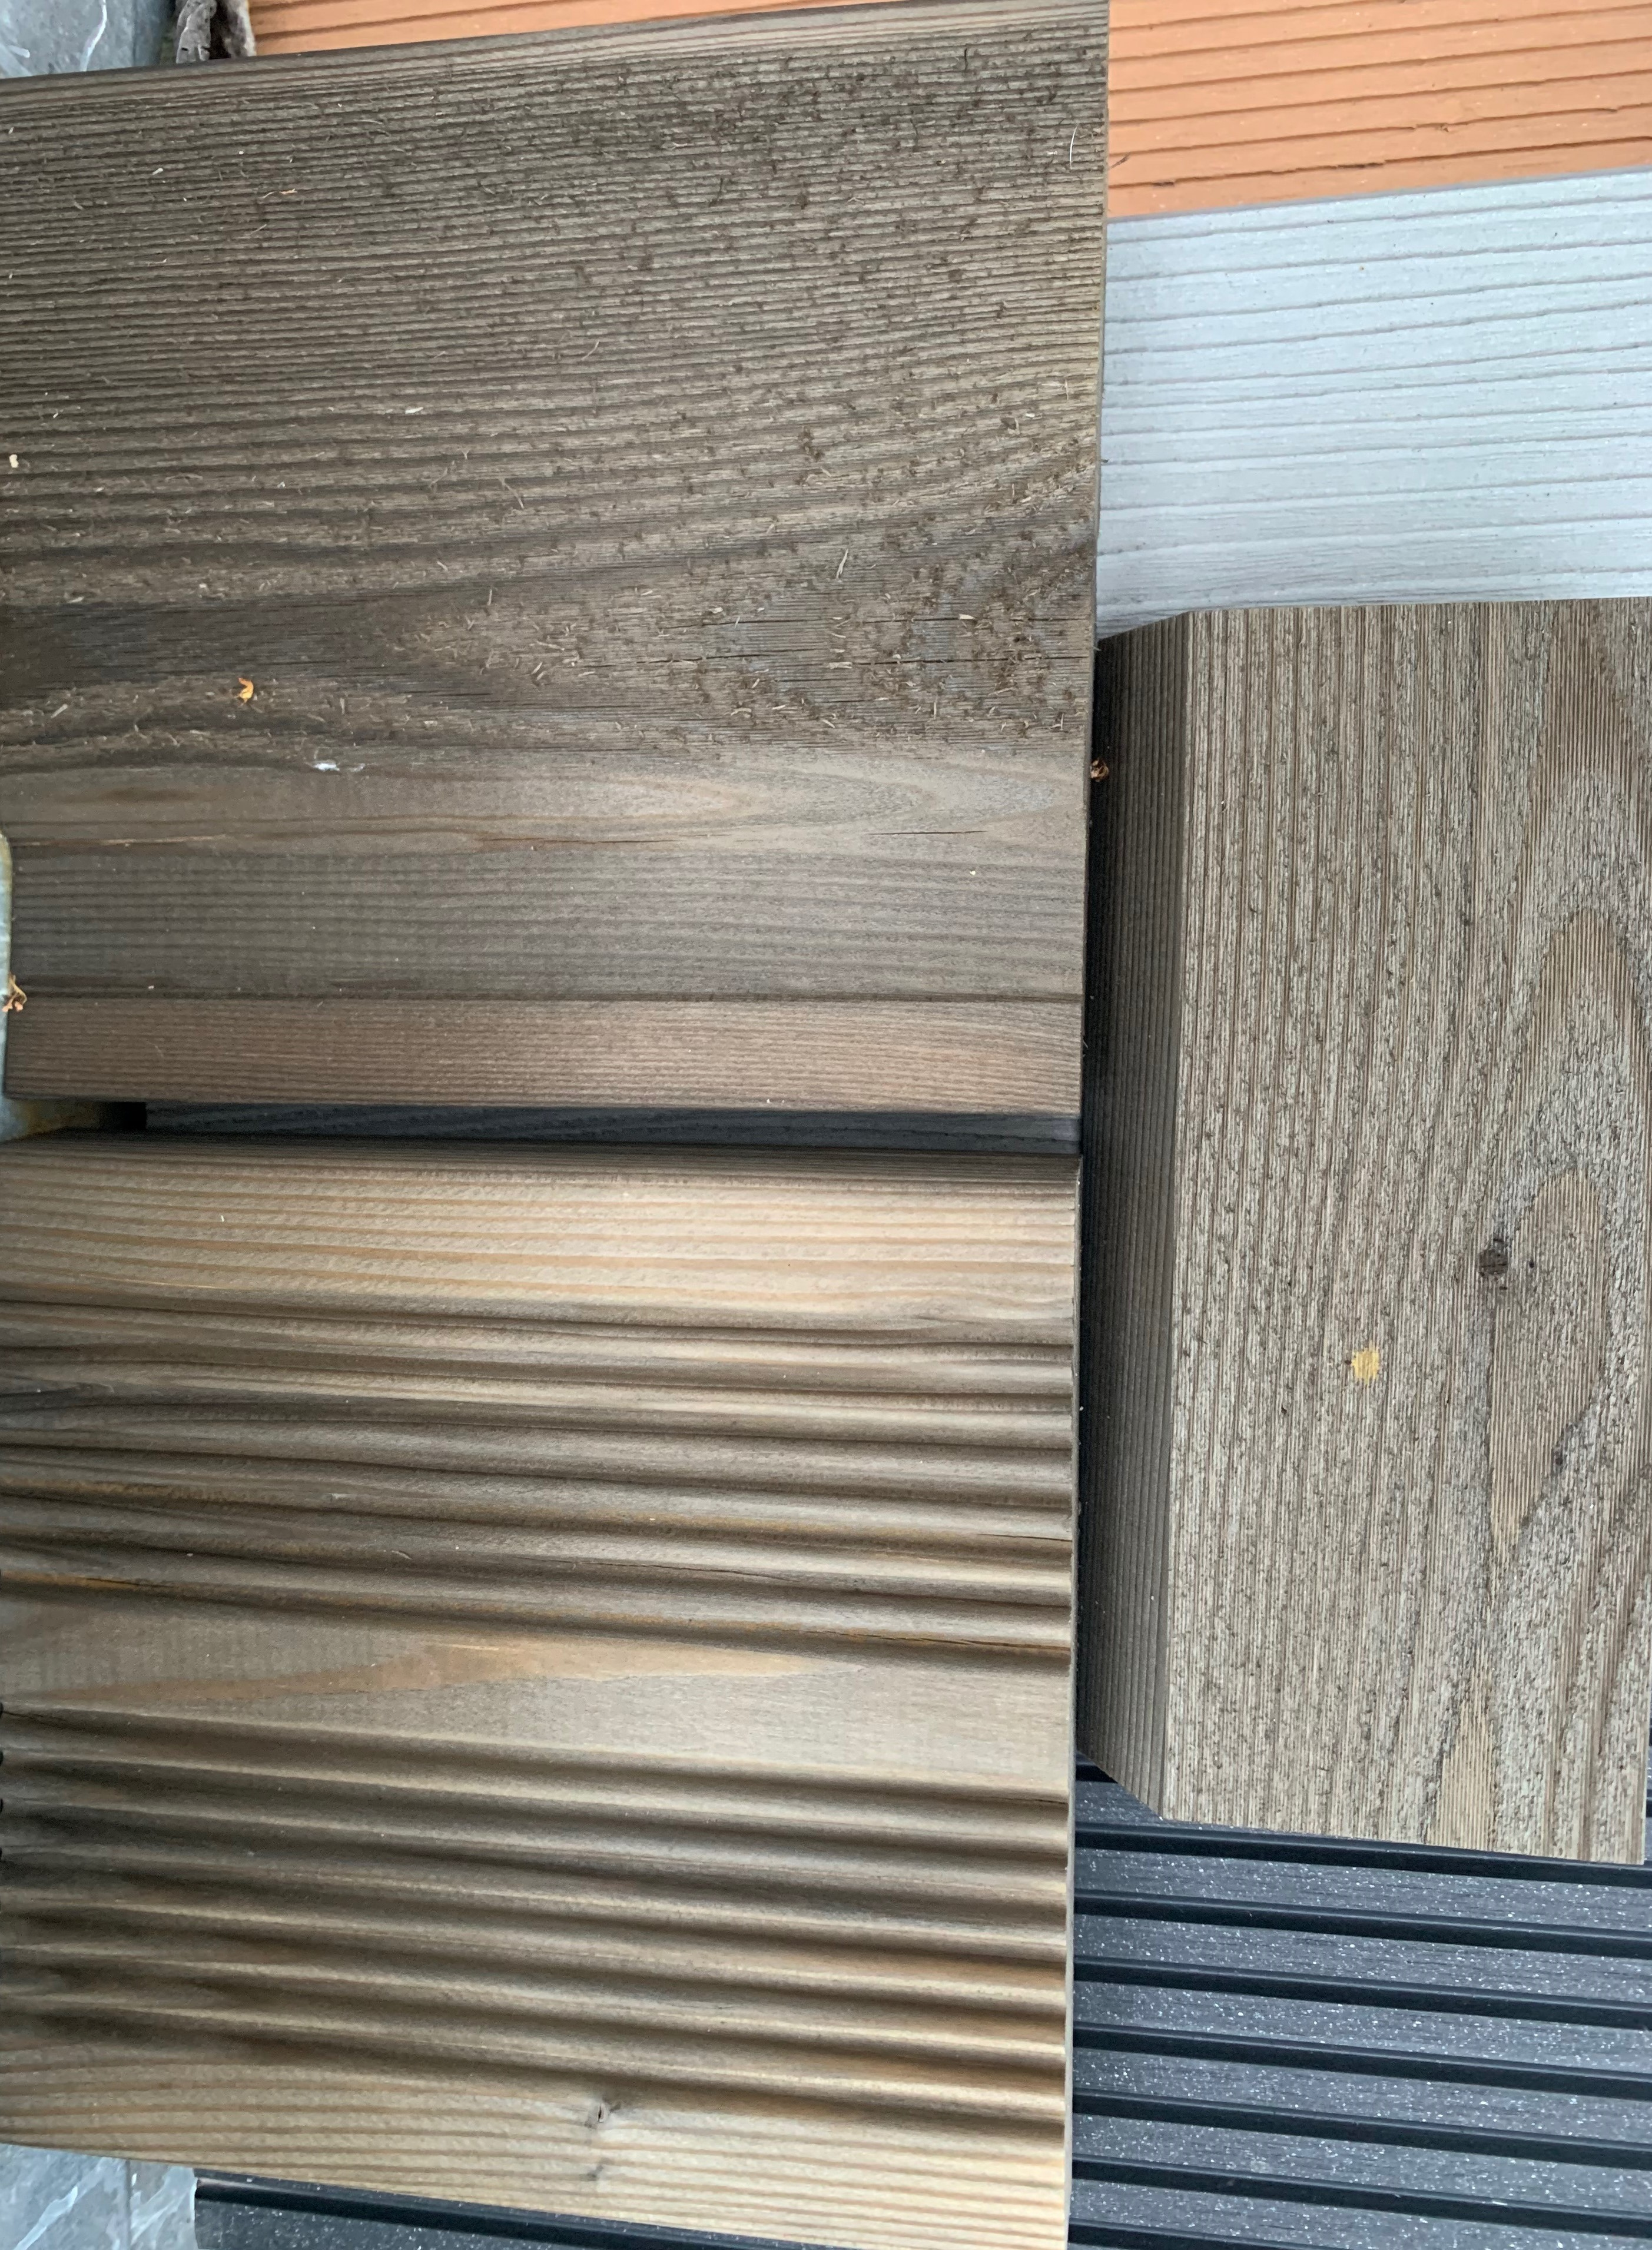 Siberian Larch Samples Treated SertiWOOD Aged Look After 15 Days Exposure